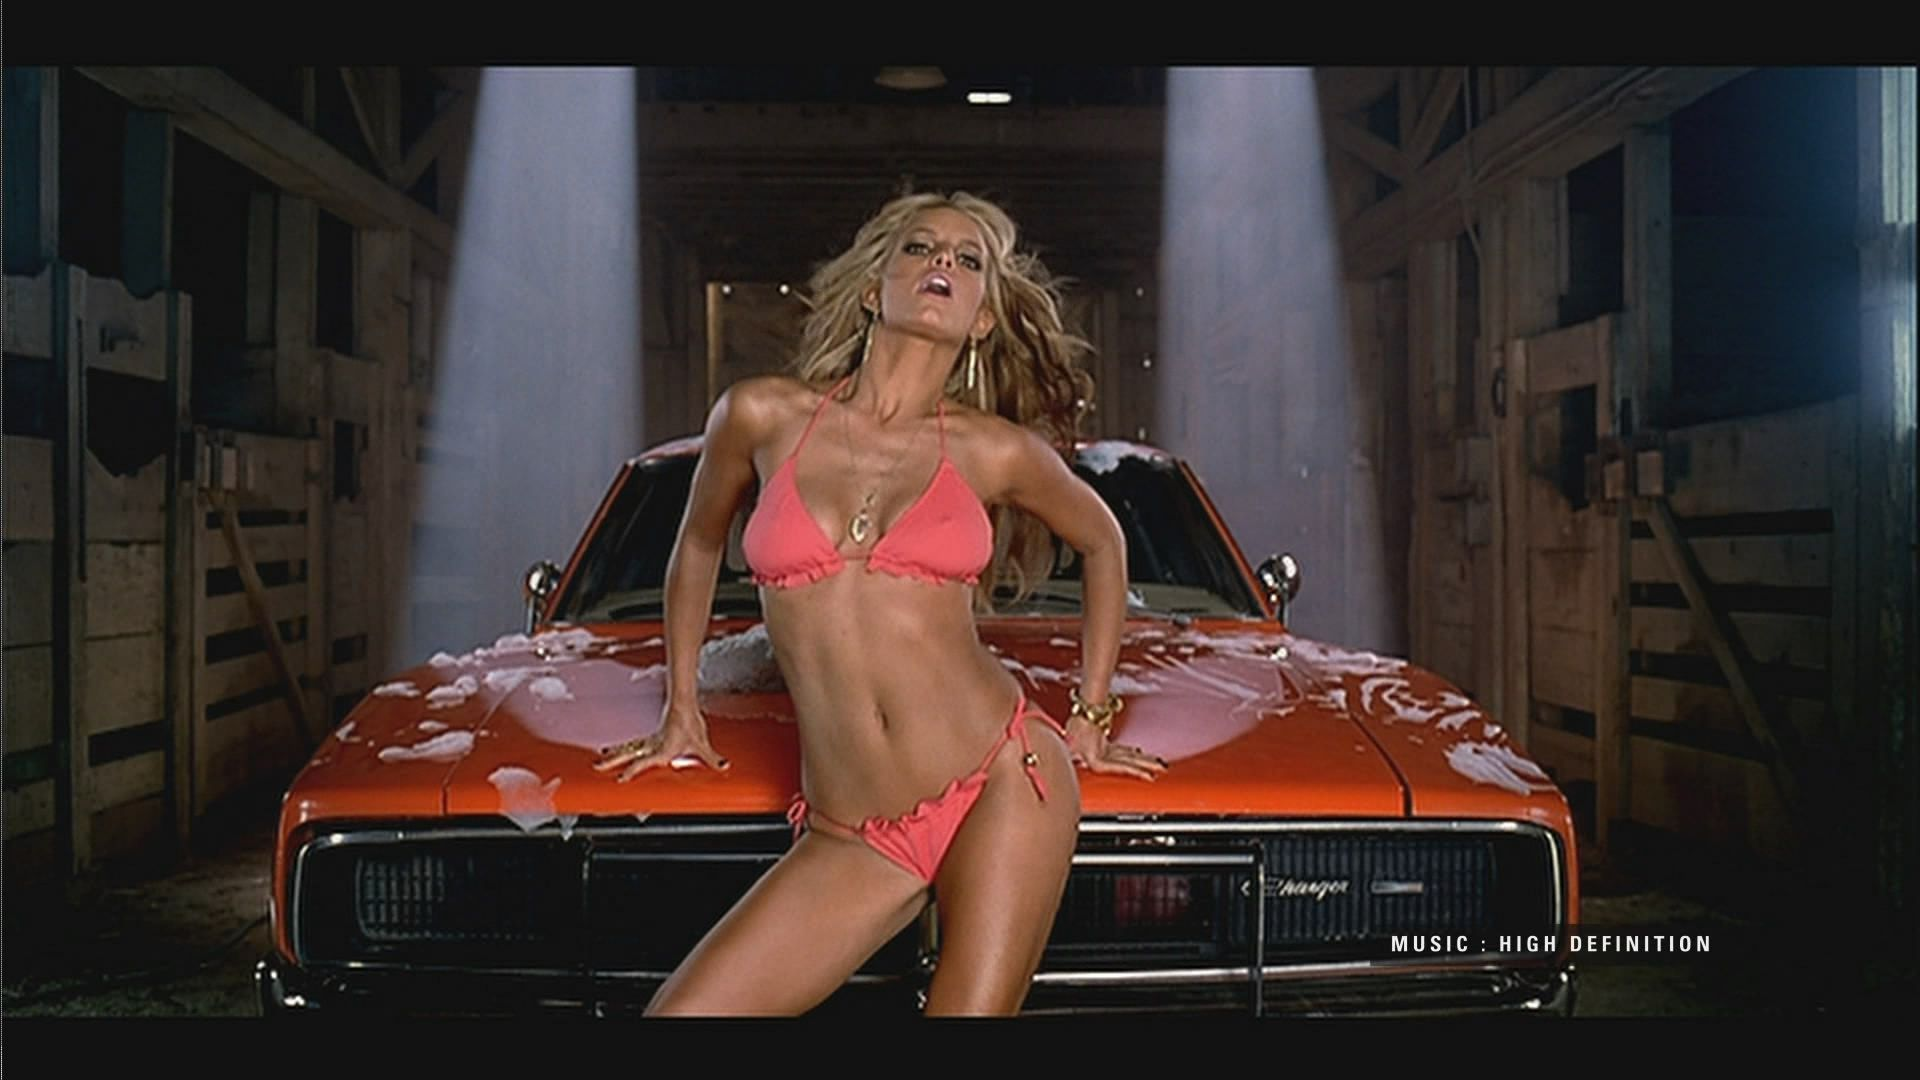 15 Sexiest Music Videos That Were Too Hot For Their Era